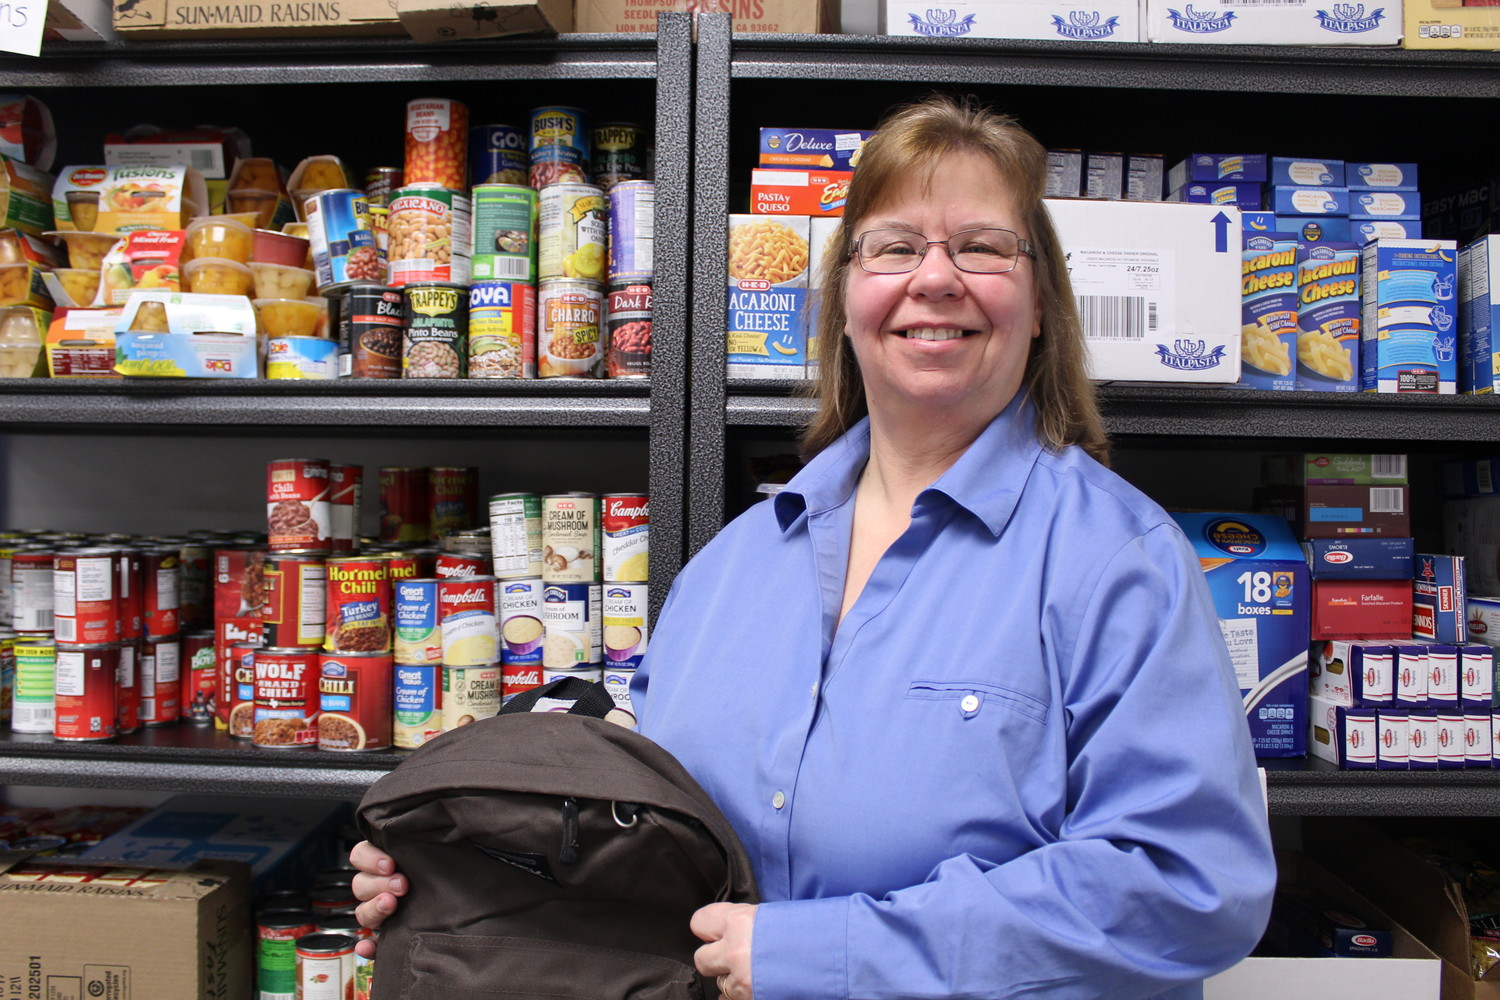 Karen Faulkner, president of Student Charities, works to ensure Leander ISD students don't go home hungry. For children that rely on being able to eat breakfast and lunch at school, the extended break often means missing meals. Student Charities' backpack and winter food box programs provide meals for the two weeks of holidays for families.